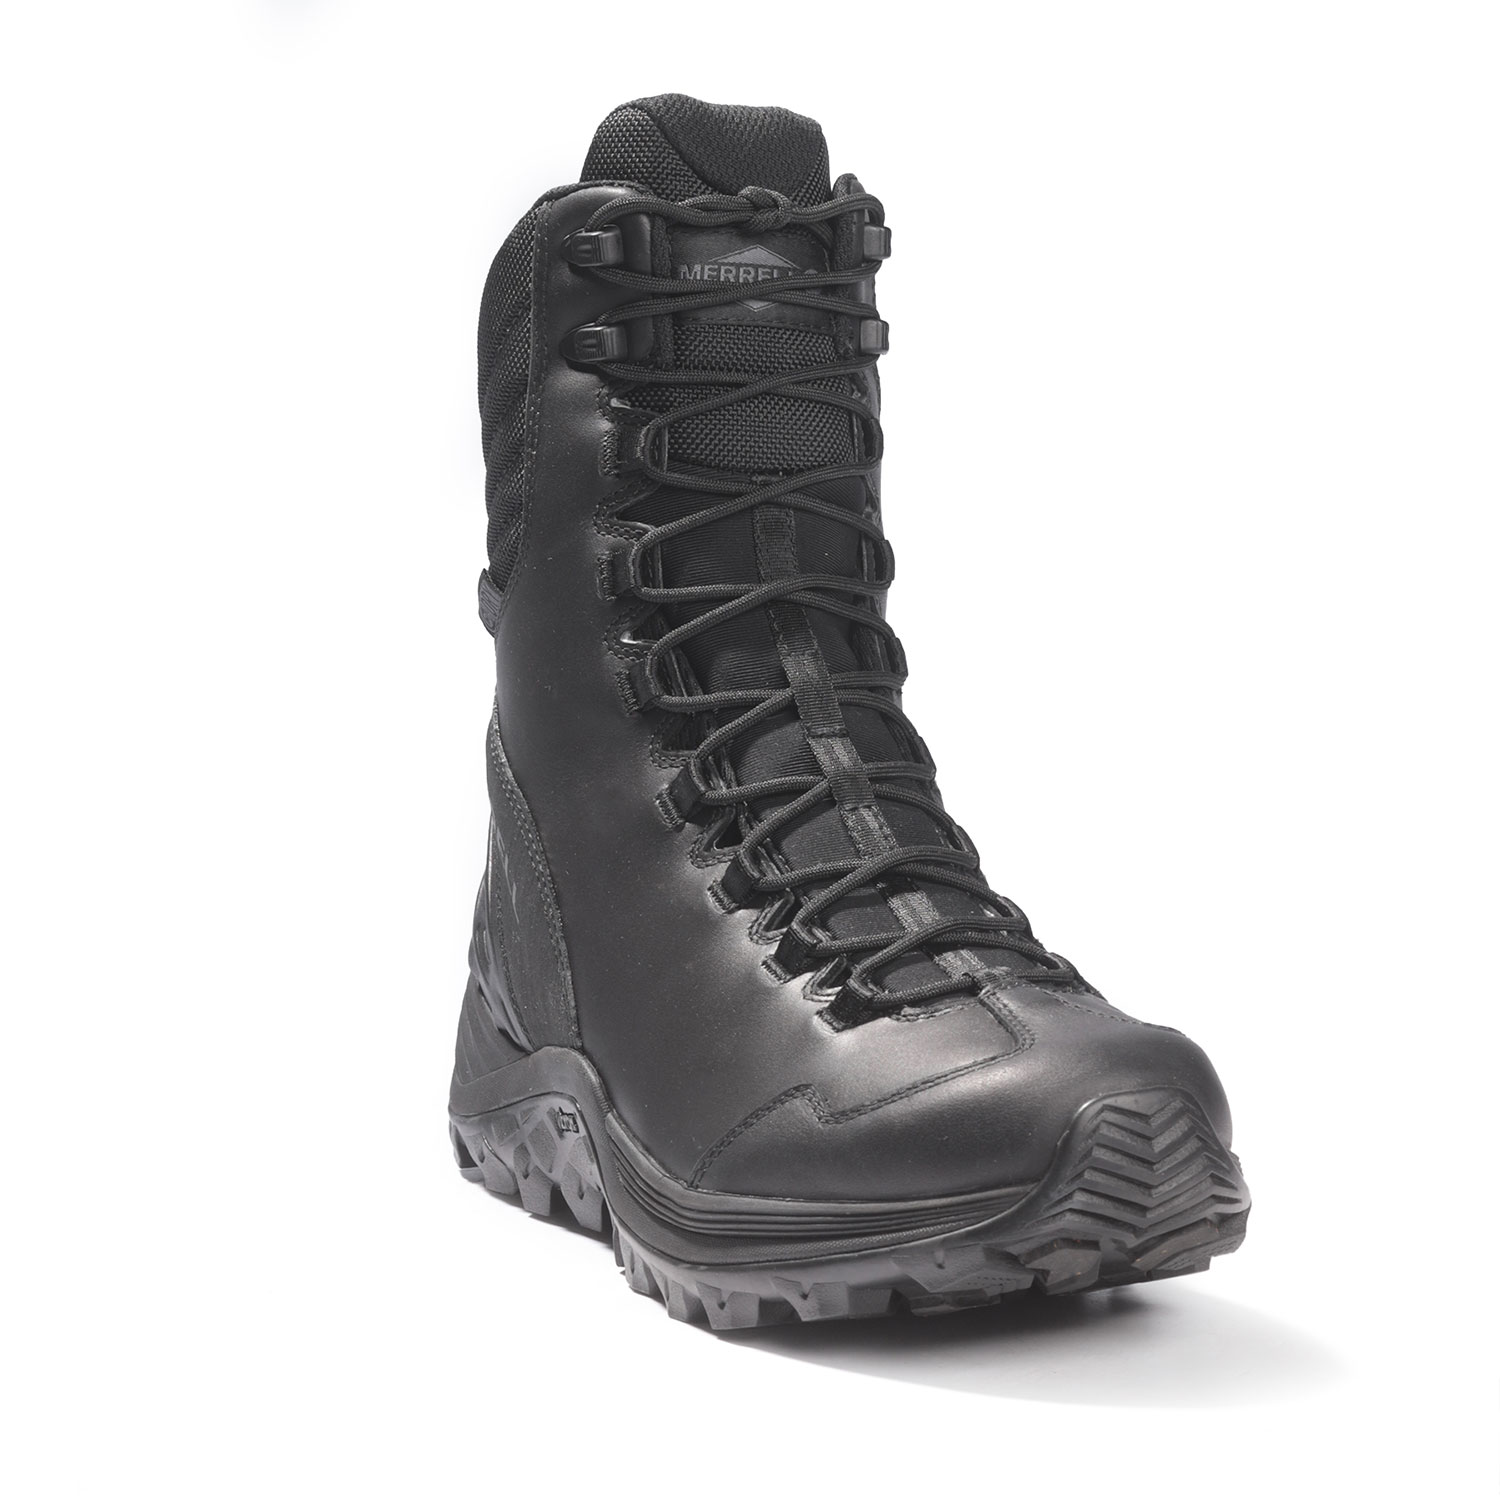 Merrell Tactical Thermo Rogue Tactical Waterproof Ice+